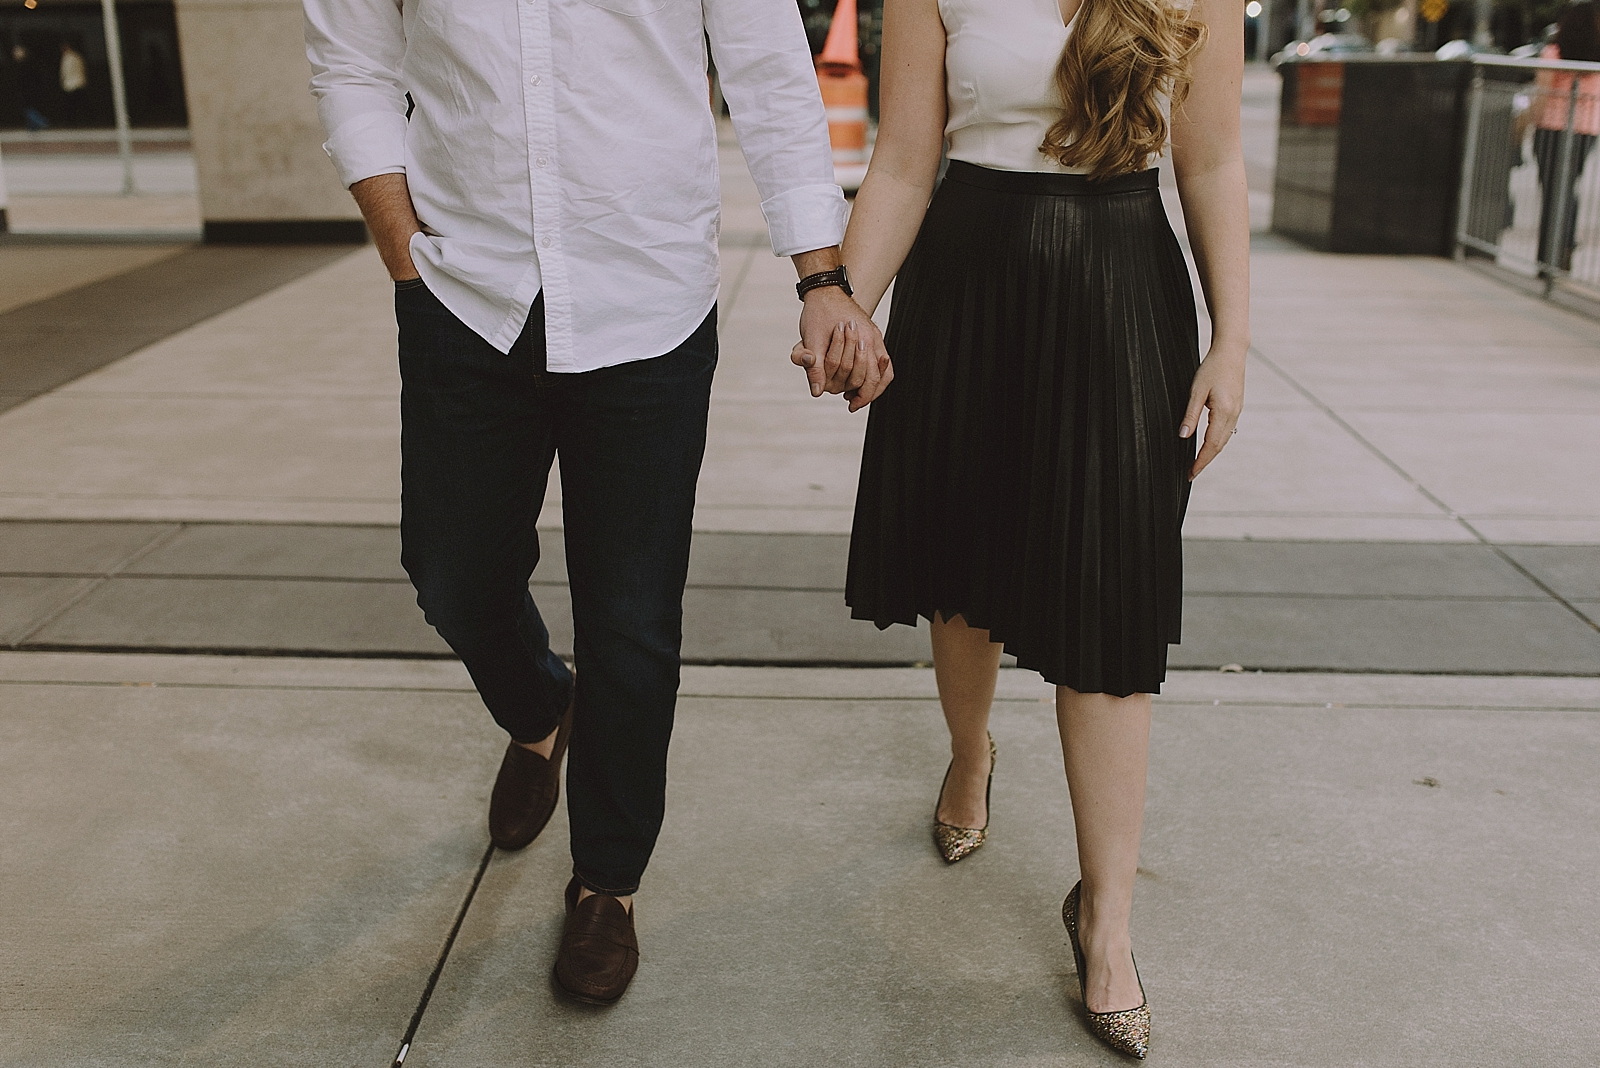 Downtown Houston Engagement Session - 016